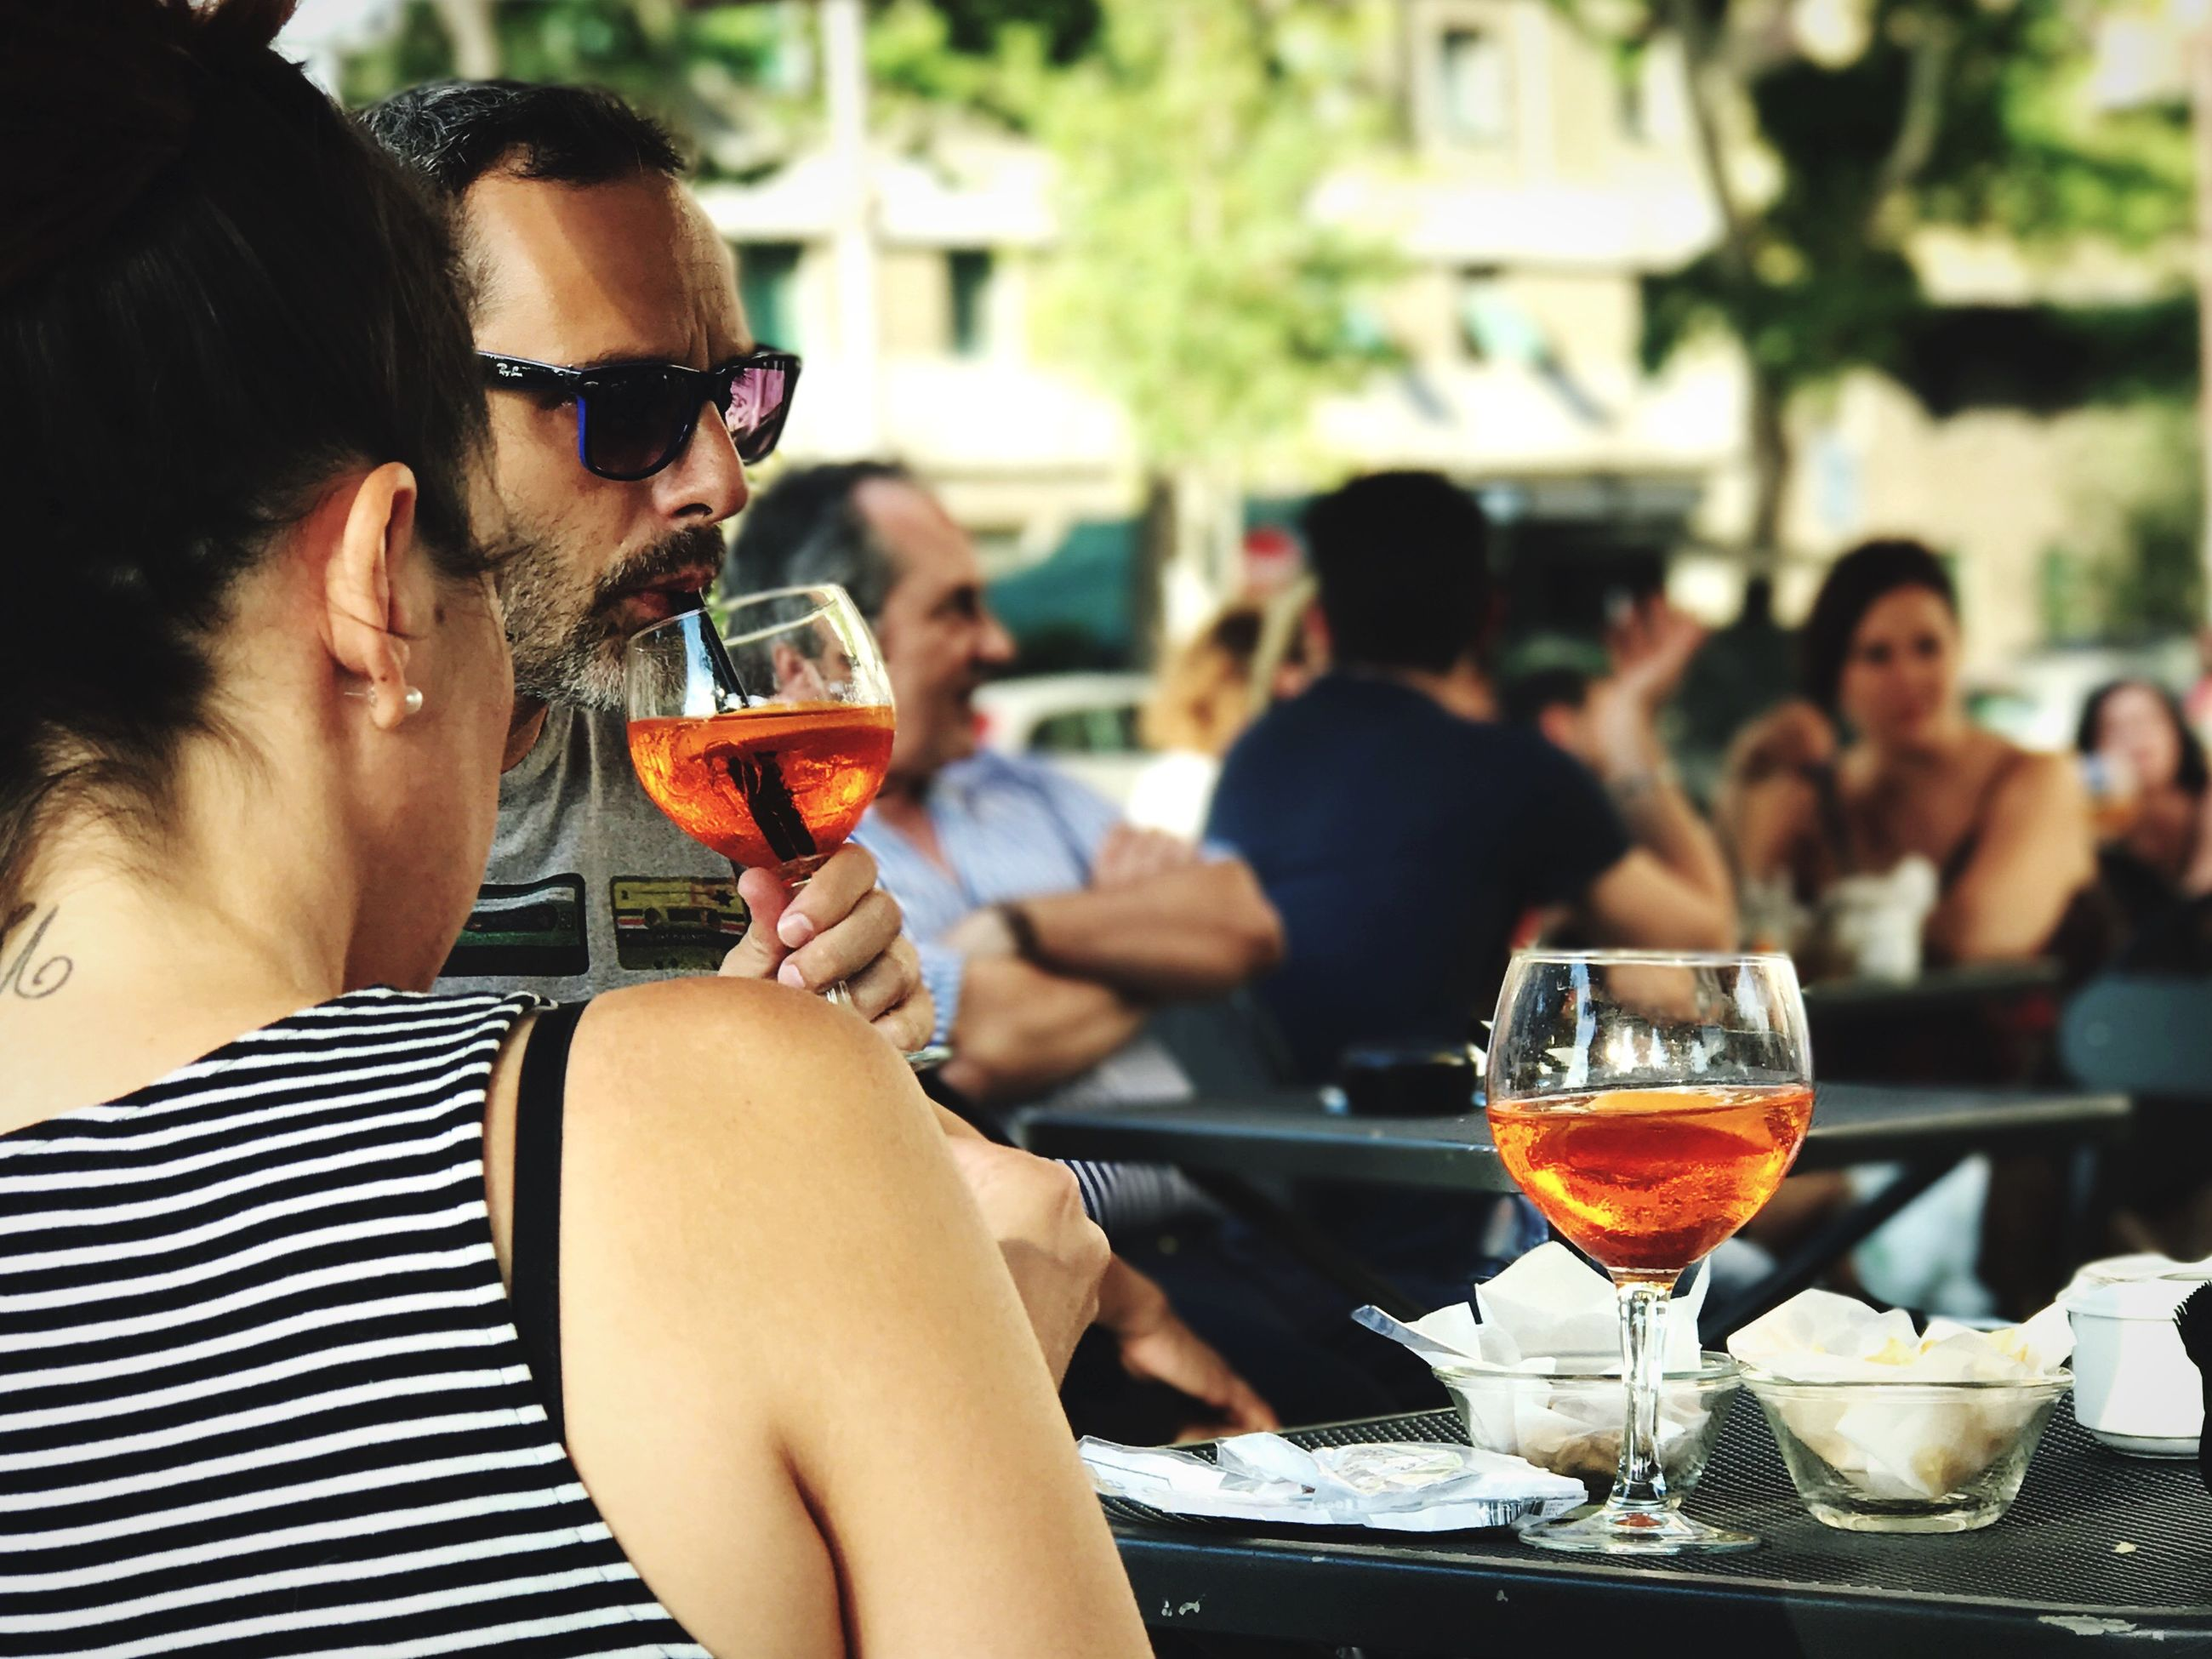 drink, wine, wineglass, drinking, food and drink, restaurant, table, alcohol, men, friendship, togetherness, drinking glass, women, sitting, food, outdoors, day, adult, people